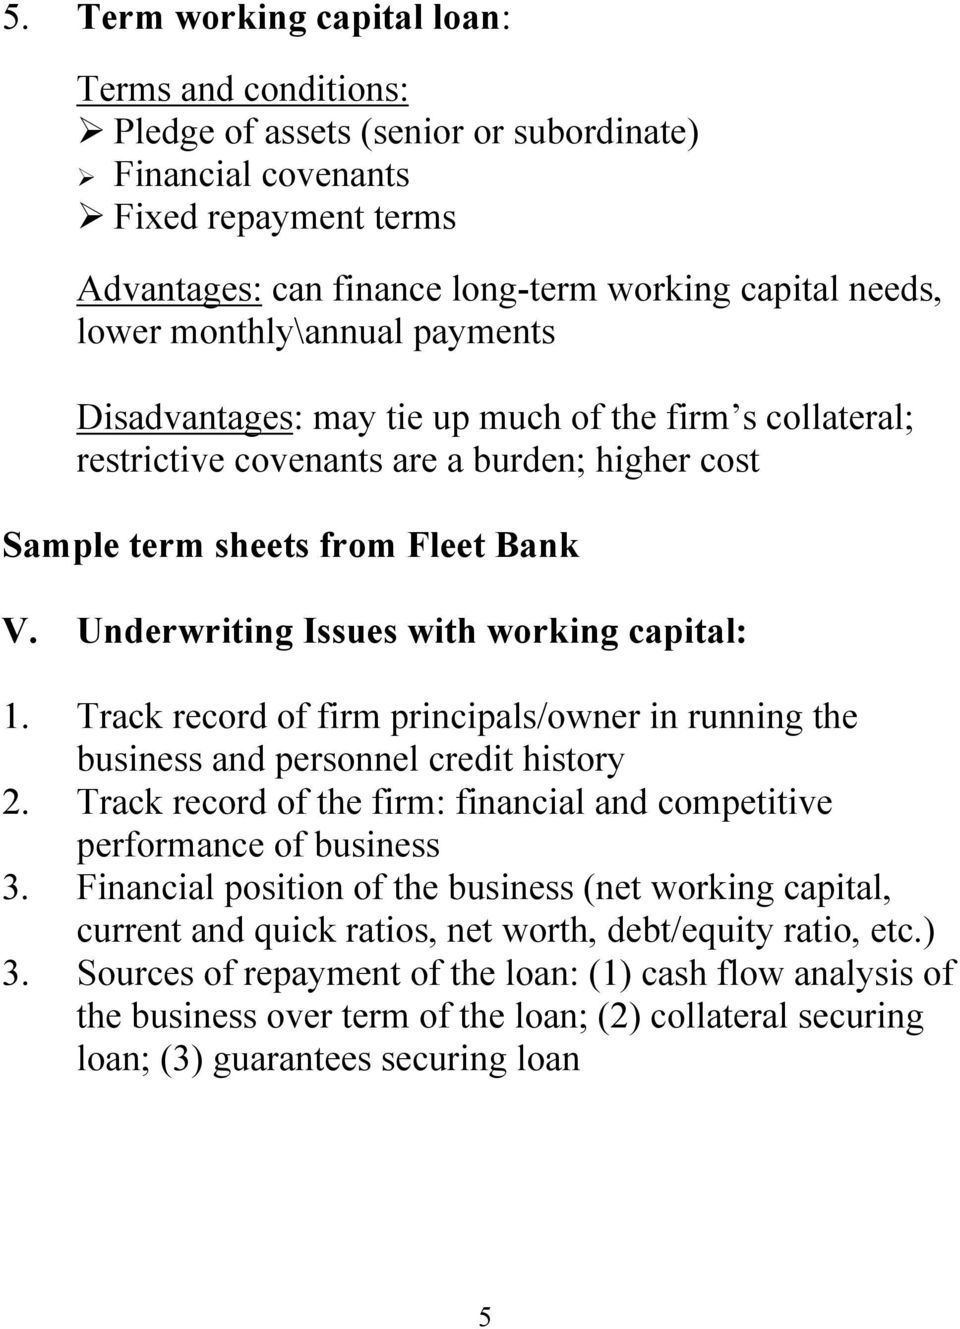 Underwriting Issues with working capital: 1. Track record of firm principals/owner in running the business and personnel credit history 2.